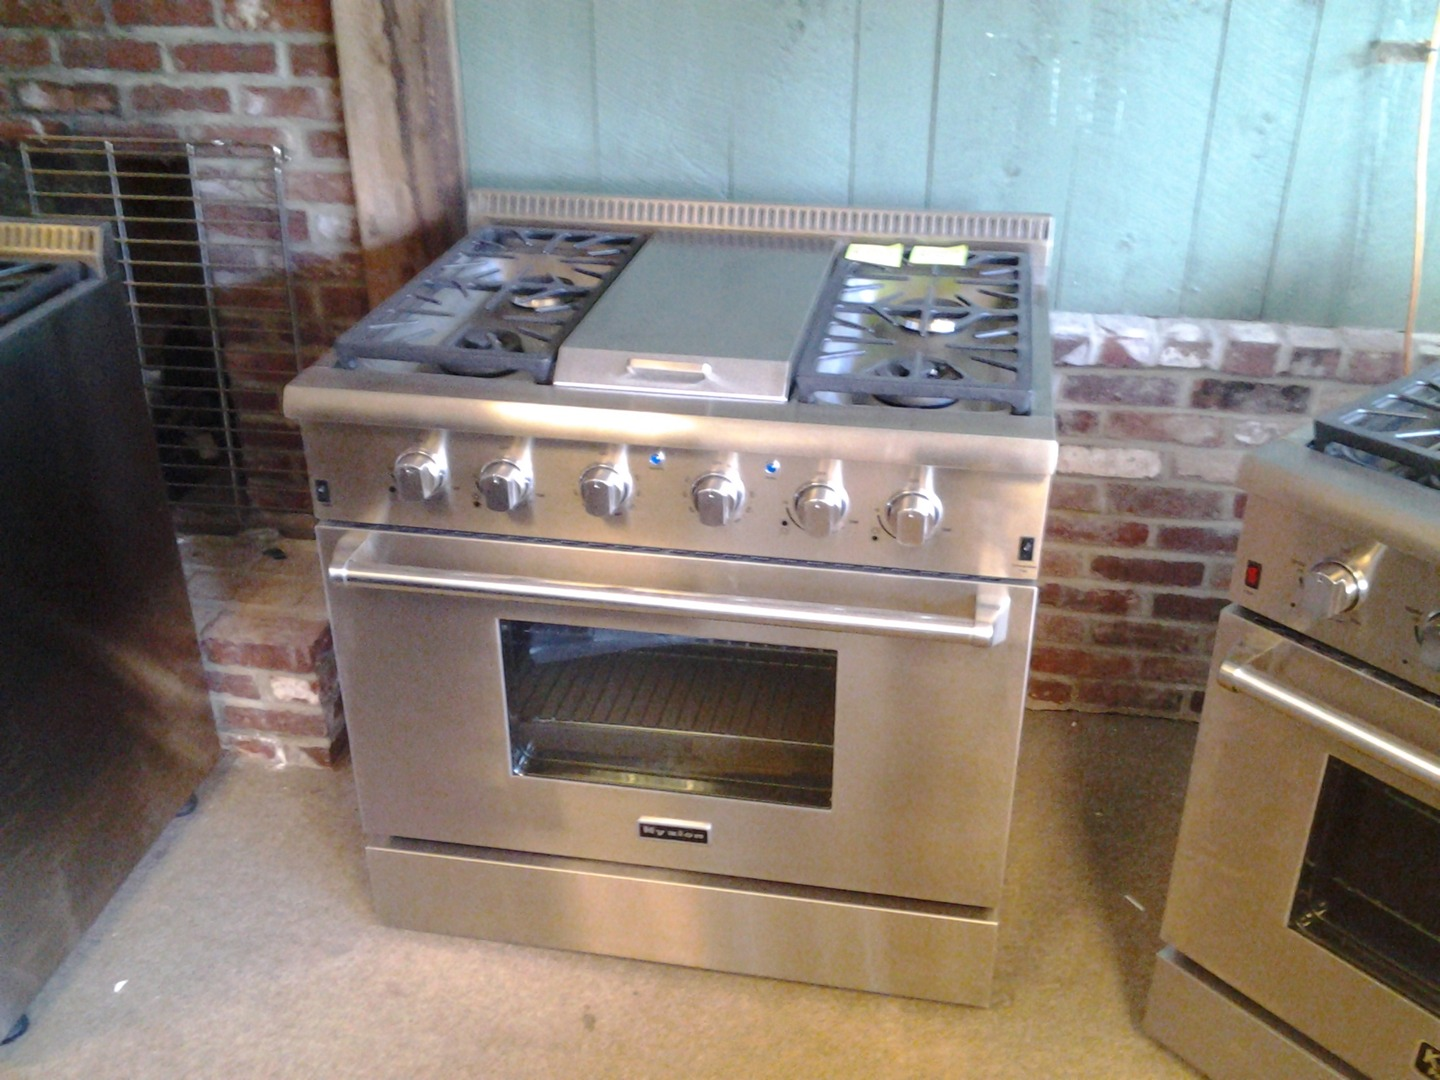 We Carry All Major Brands Of New Scratch Dent Pre Owned Used Appliances Come In And See Our Huge Selection Of Top Of The Line Stainless Steel Stoves